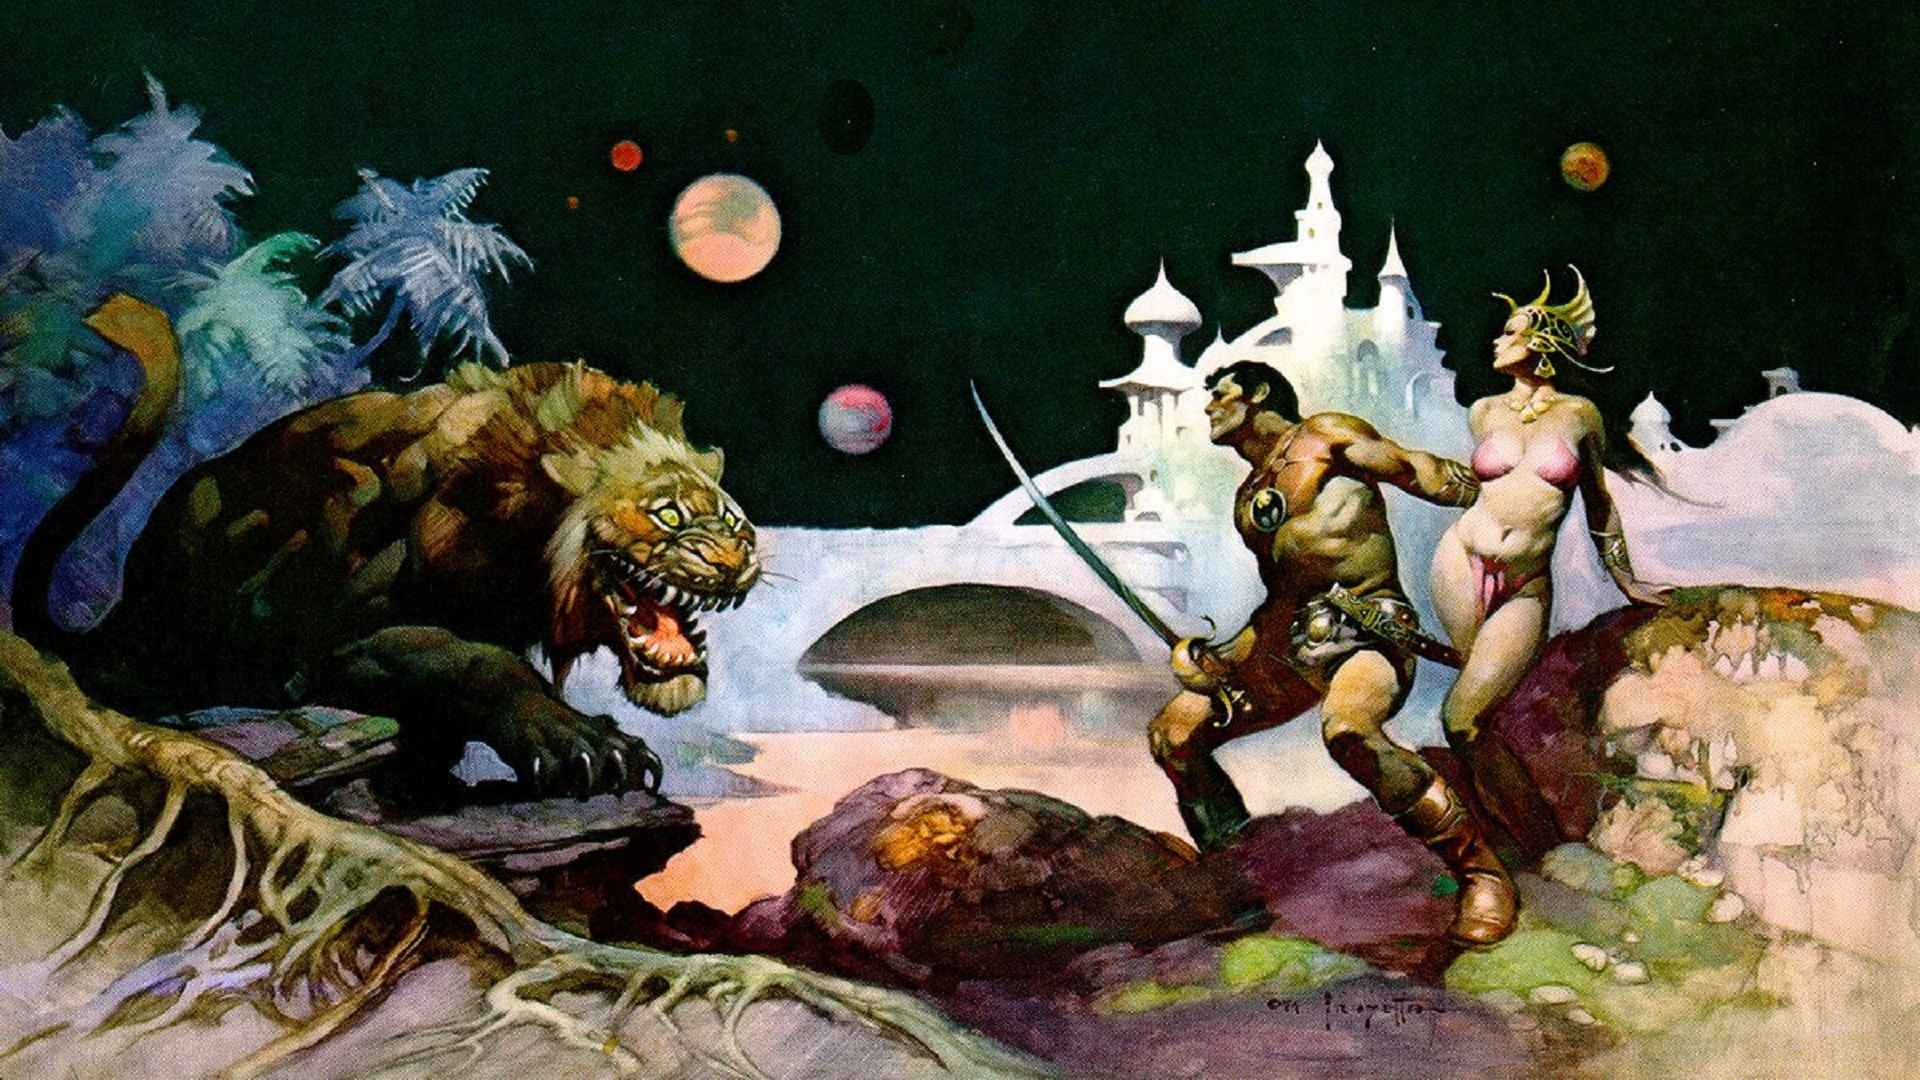 artwork frank frazetta HD Wallpaper   General 769326 1920x1080